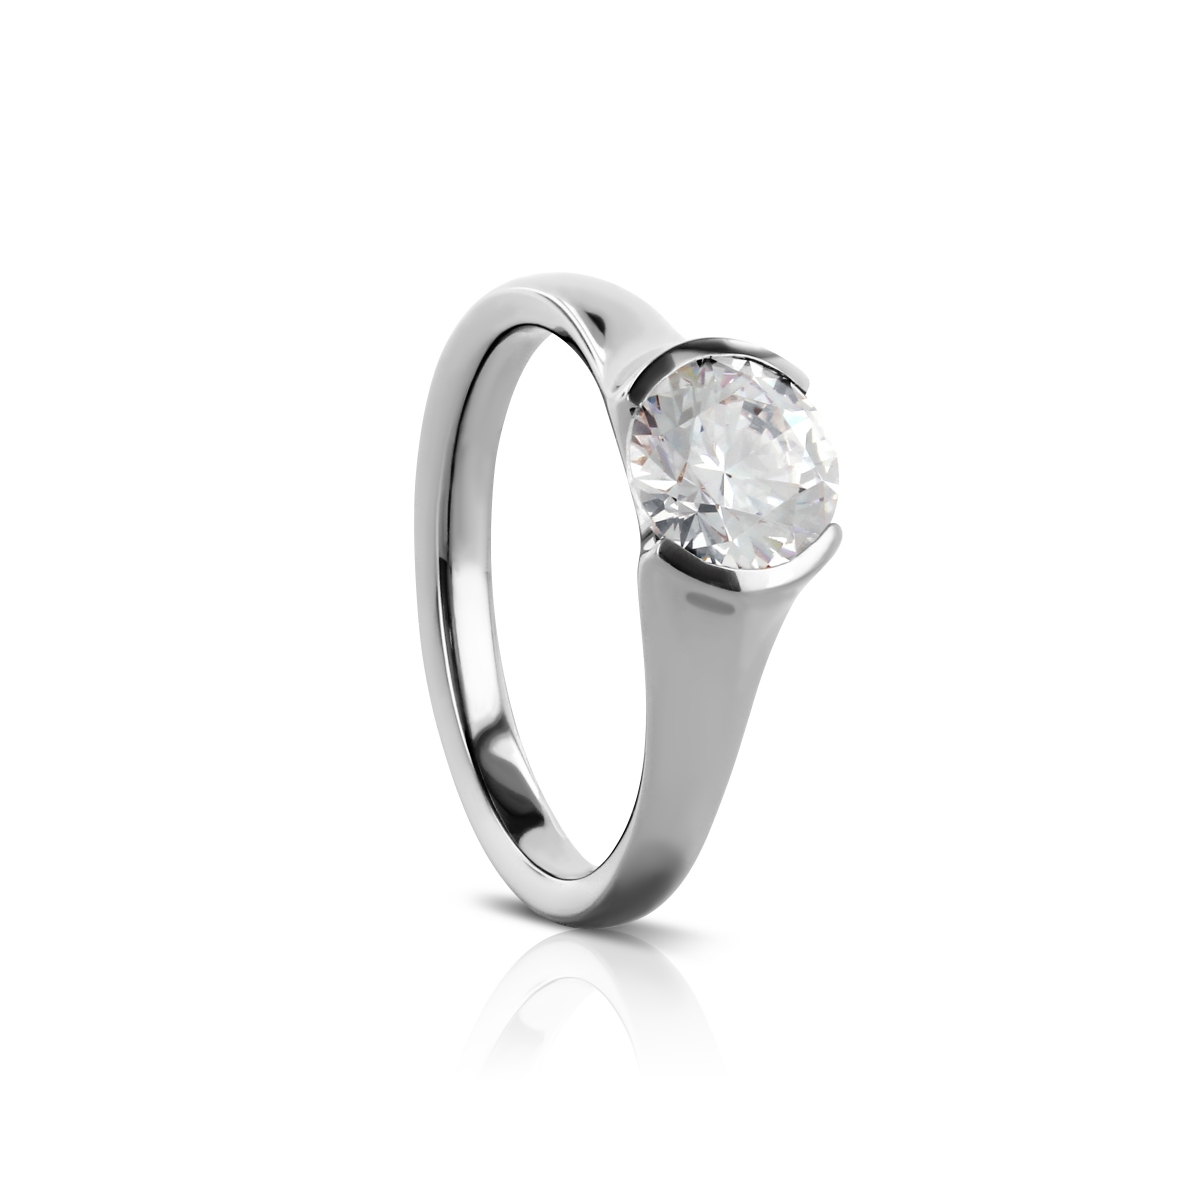 collections a gia bespoke with jewellers codd platinum certified nottingham tension carolyn hand set rings fine ring diamond engagement budget dress d in made